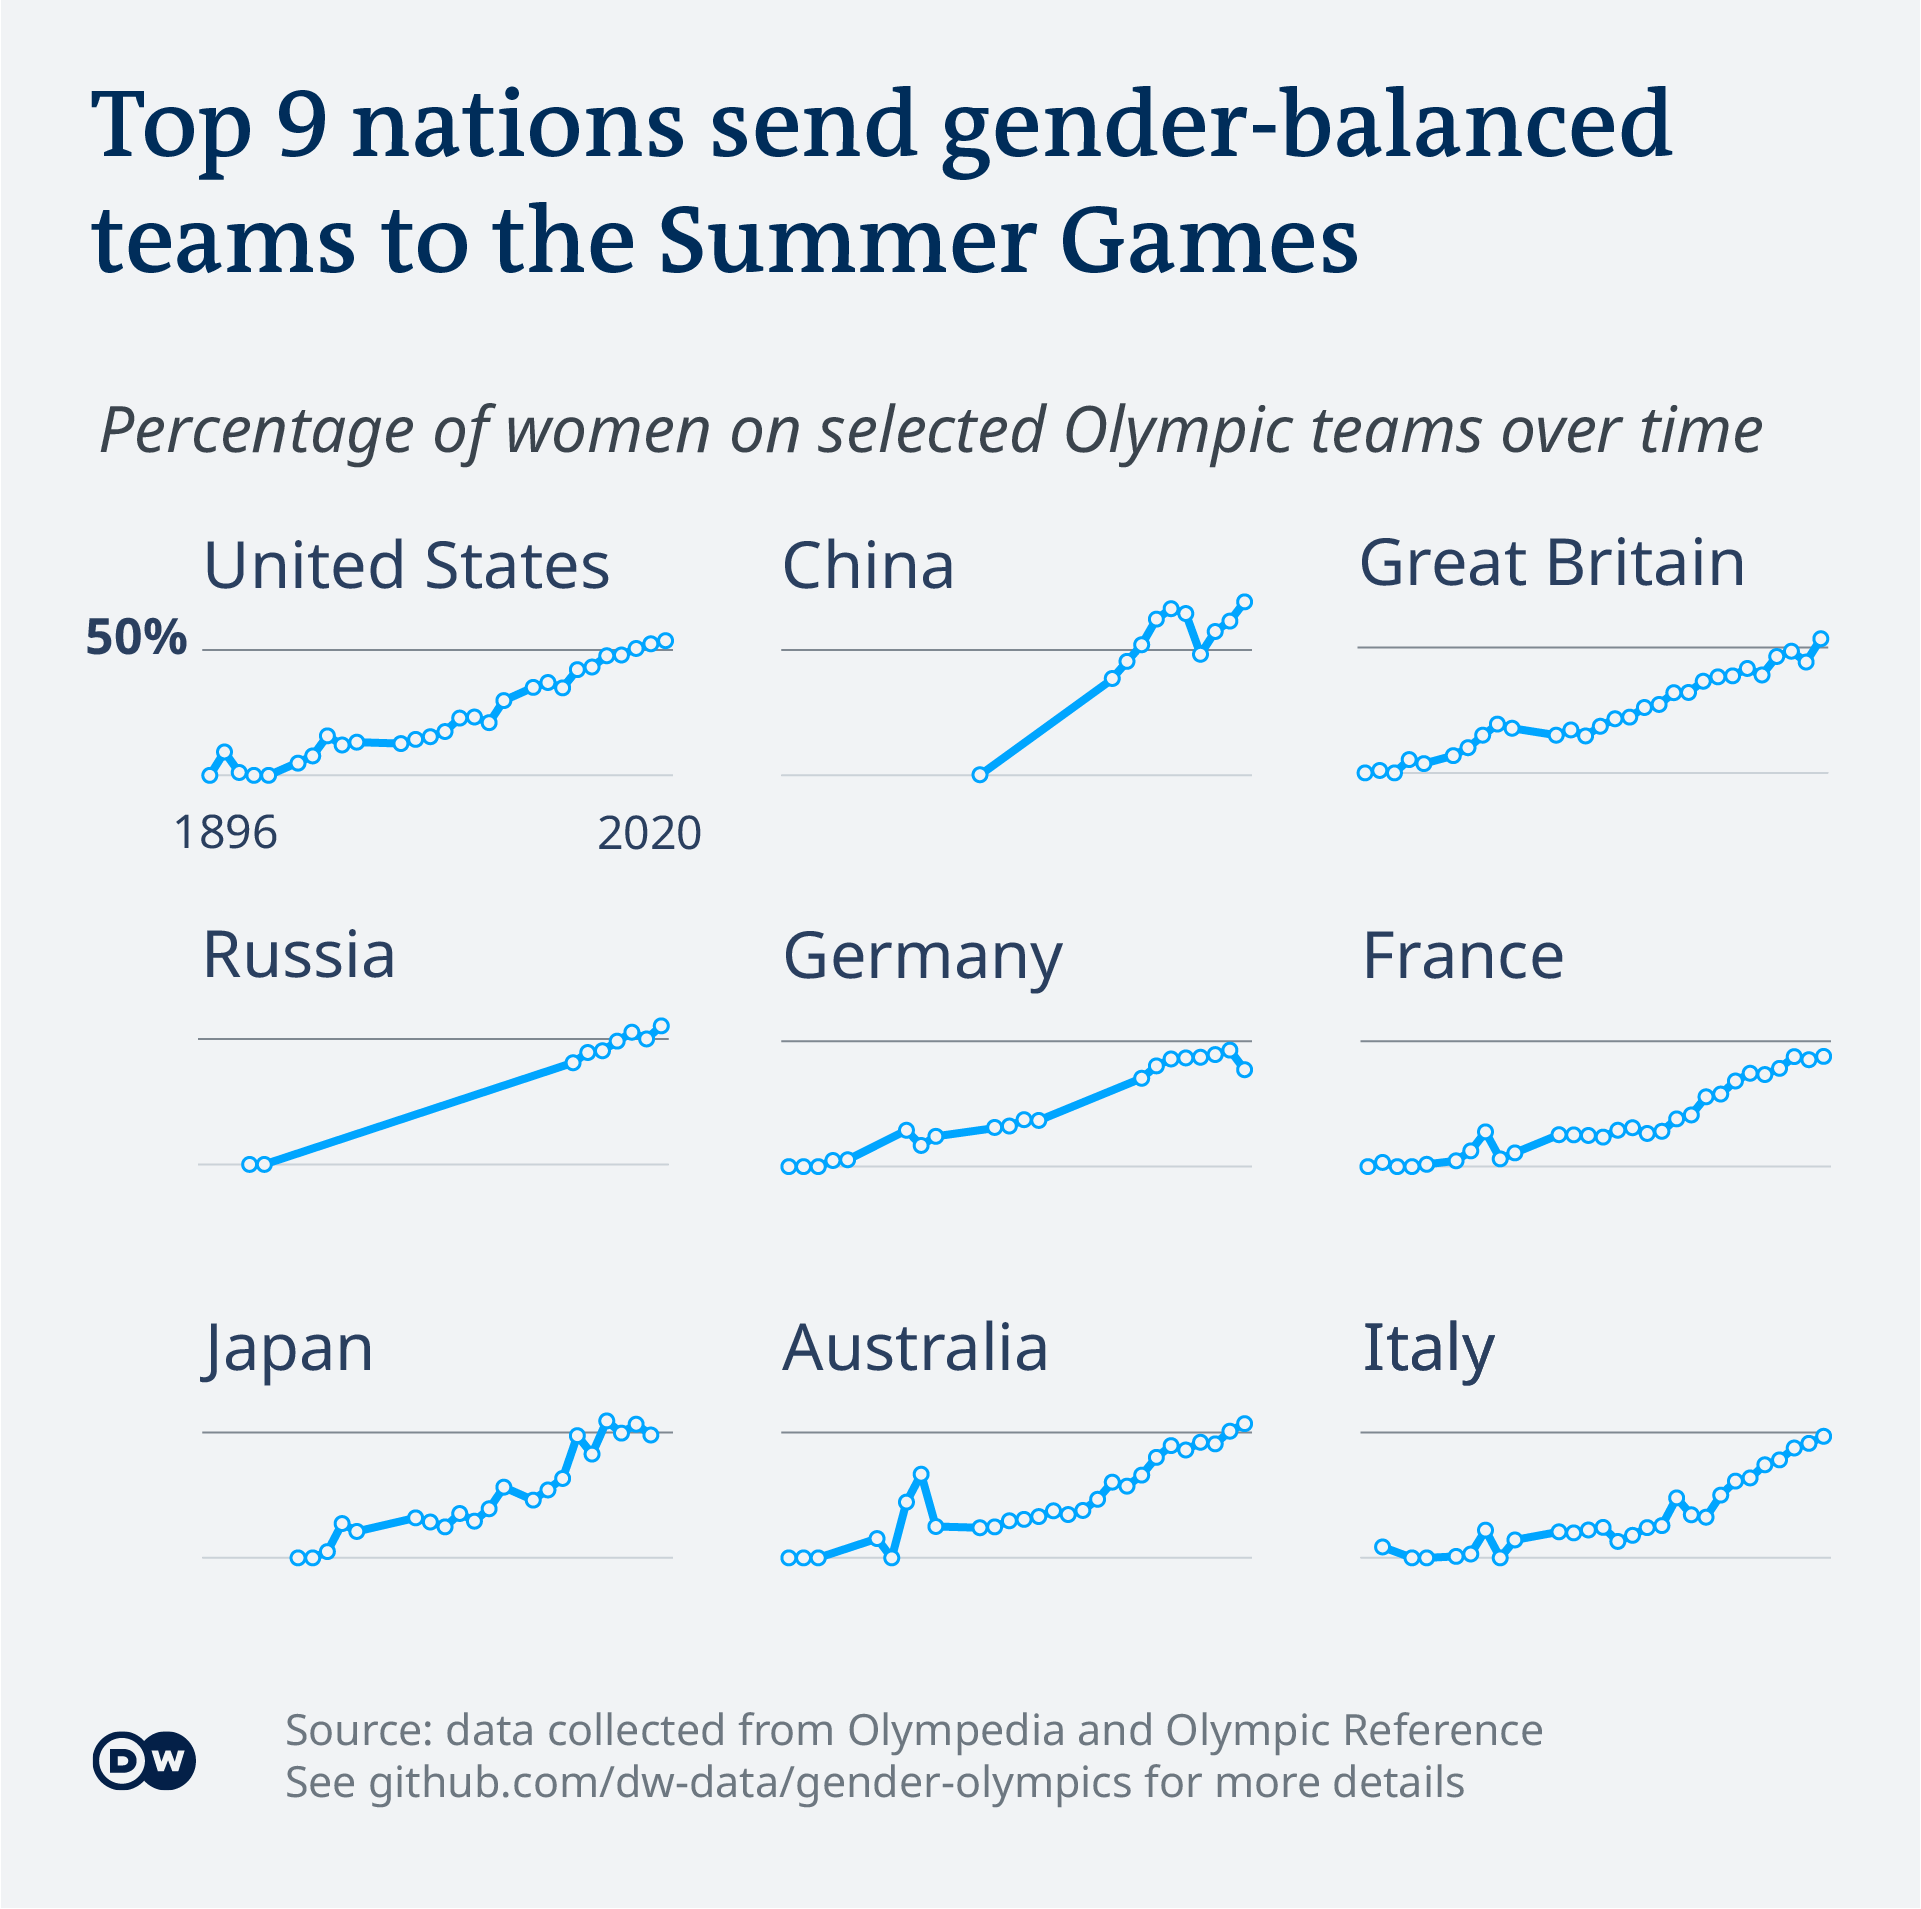 Data visualization of Olympic gender balance and share of females per team for the Summer Olympics 2020